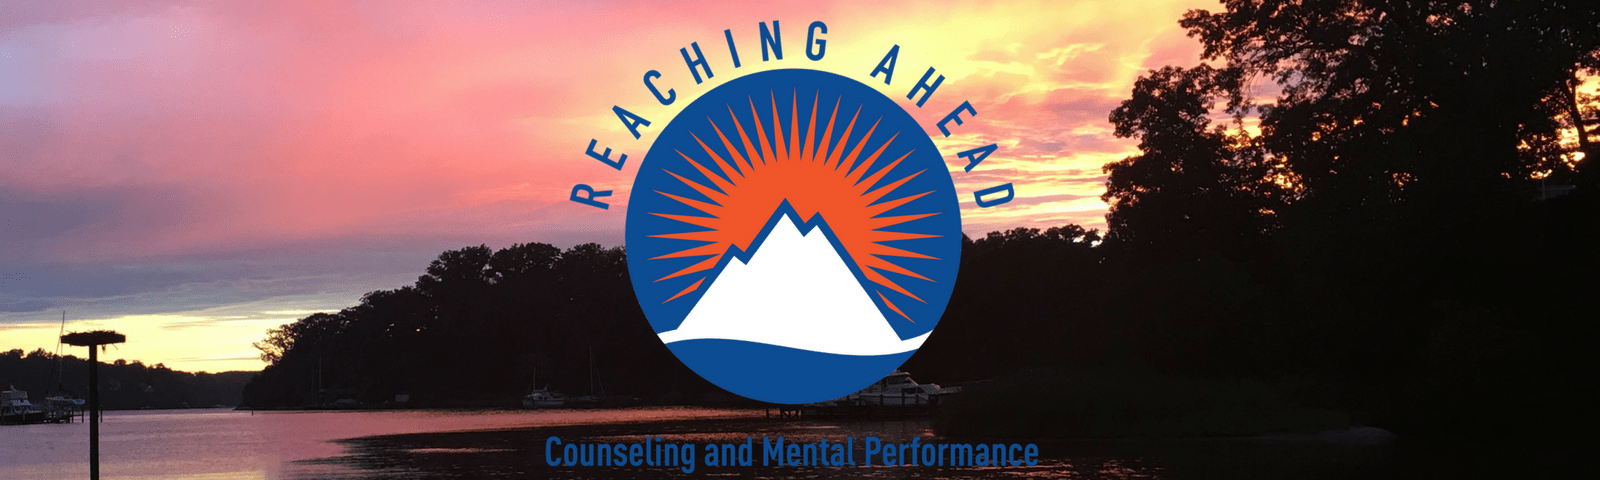 counseling or mental performance